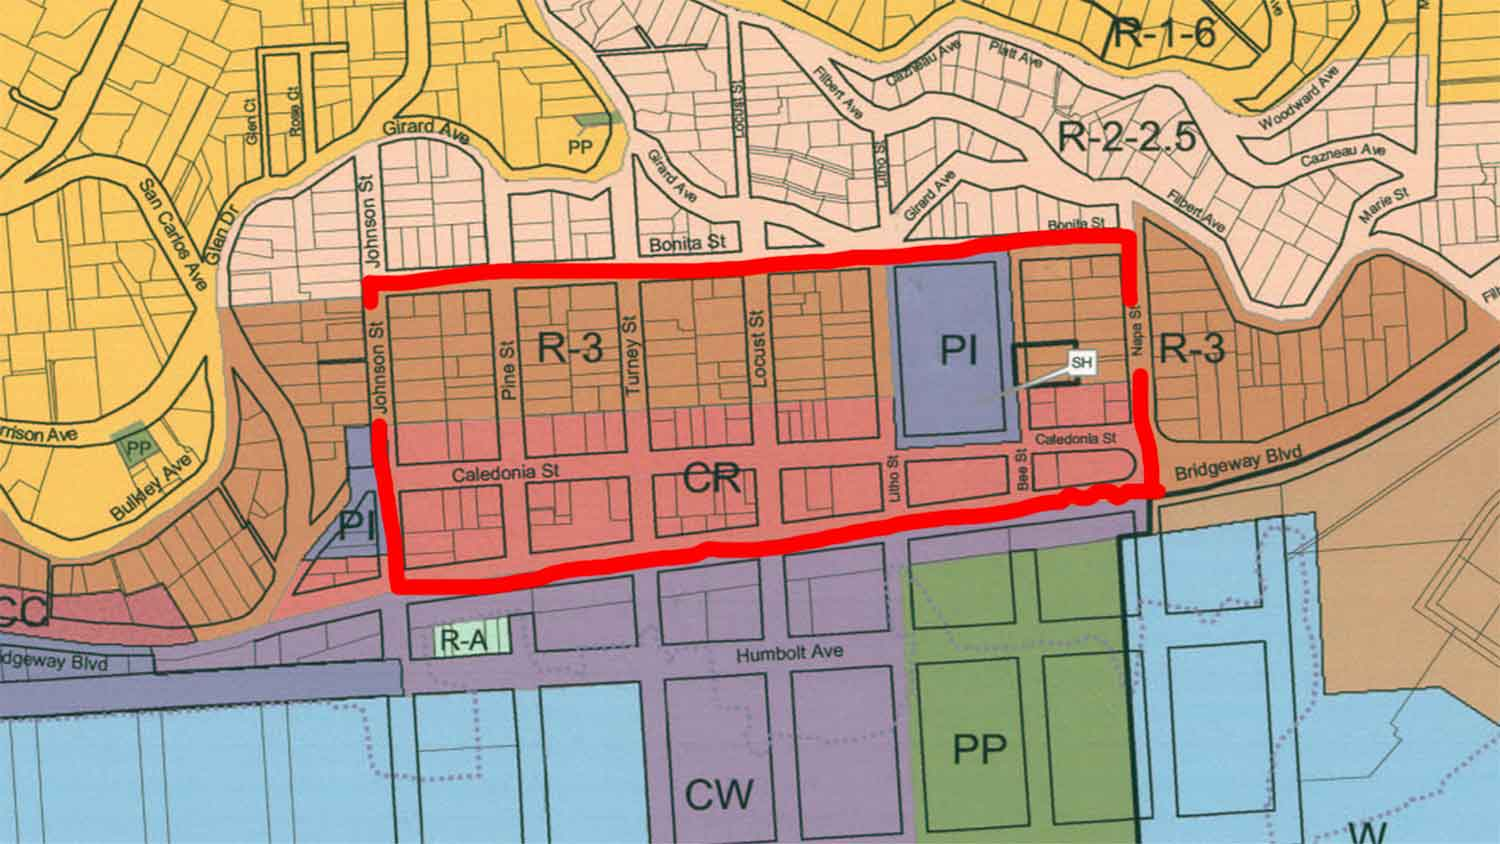 Zoomed in Zoning Map With New Boundaries